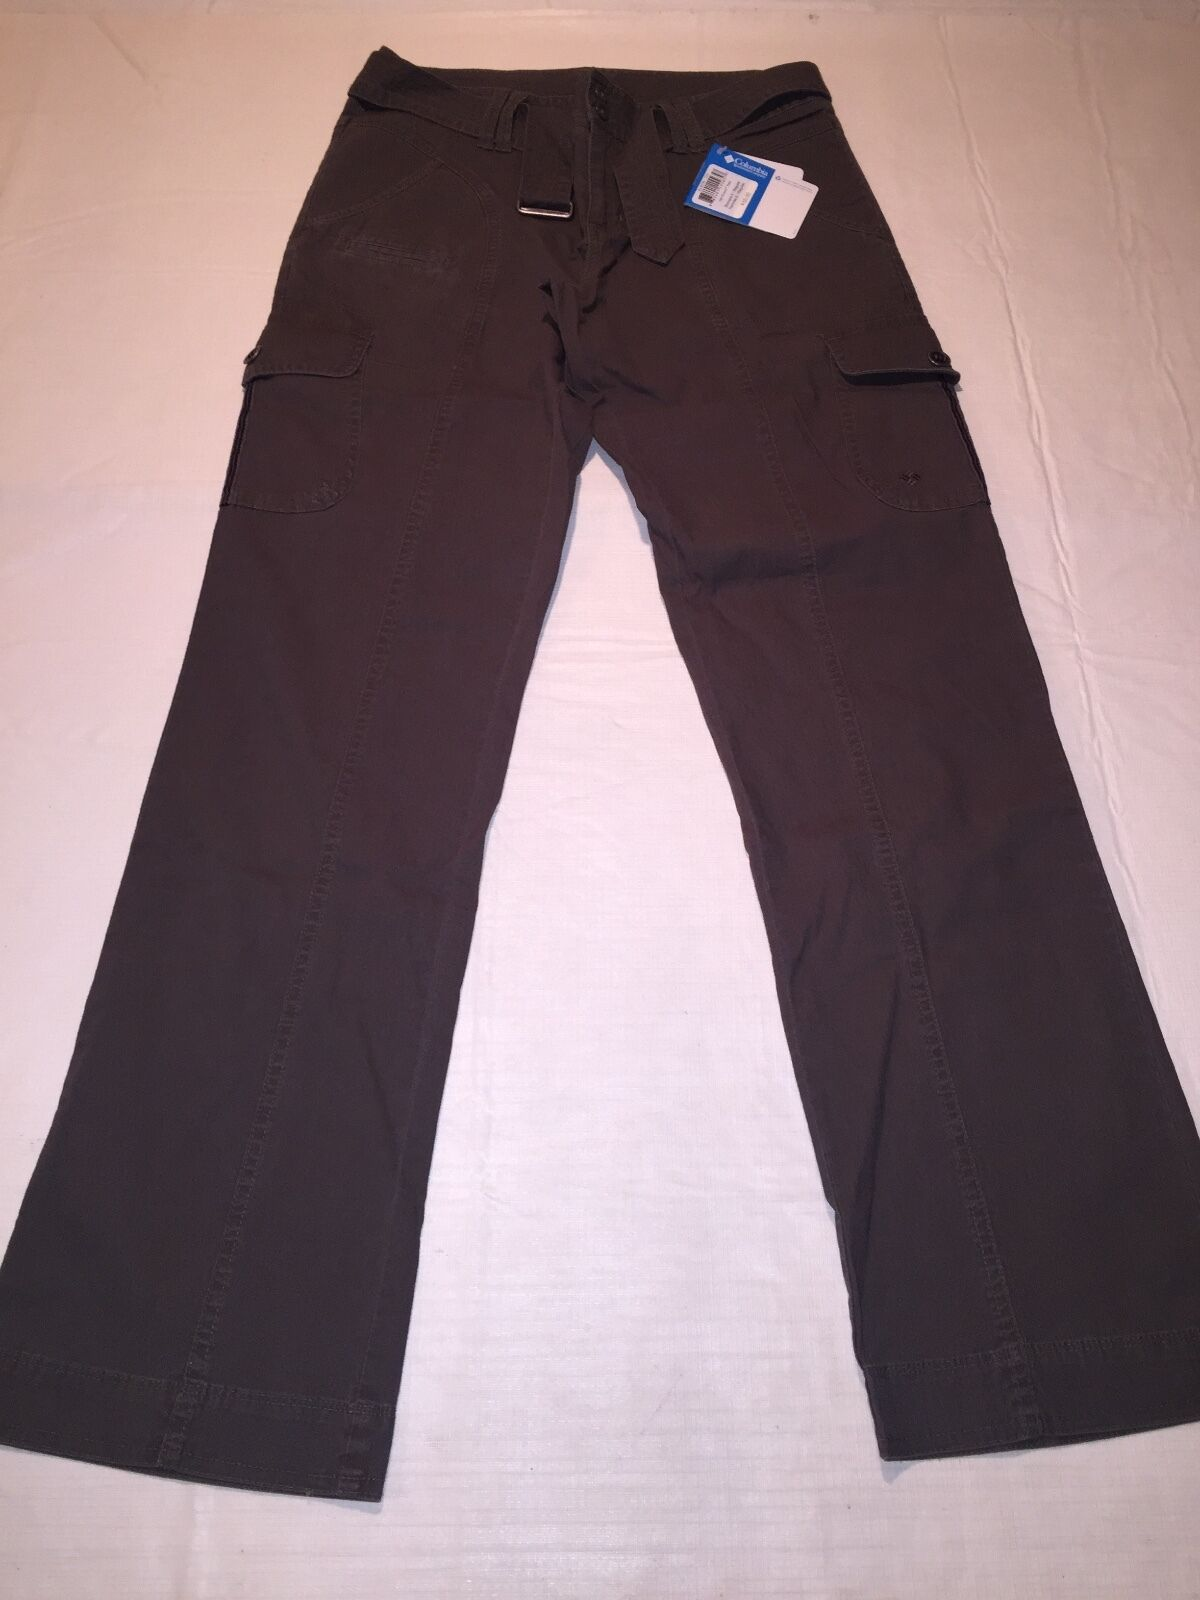 NWT Columbia Women's Get S'more Belted pants sz 6 Reg Drab Green ret.  55.00